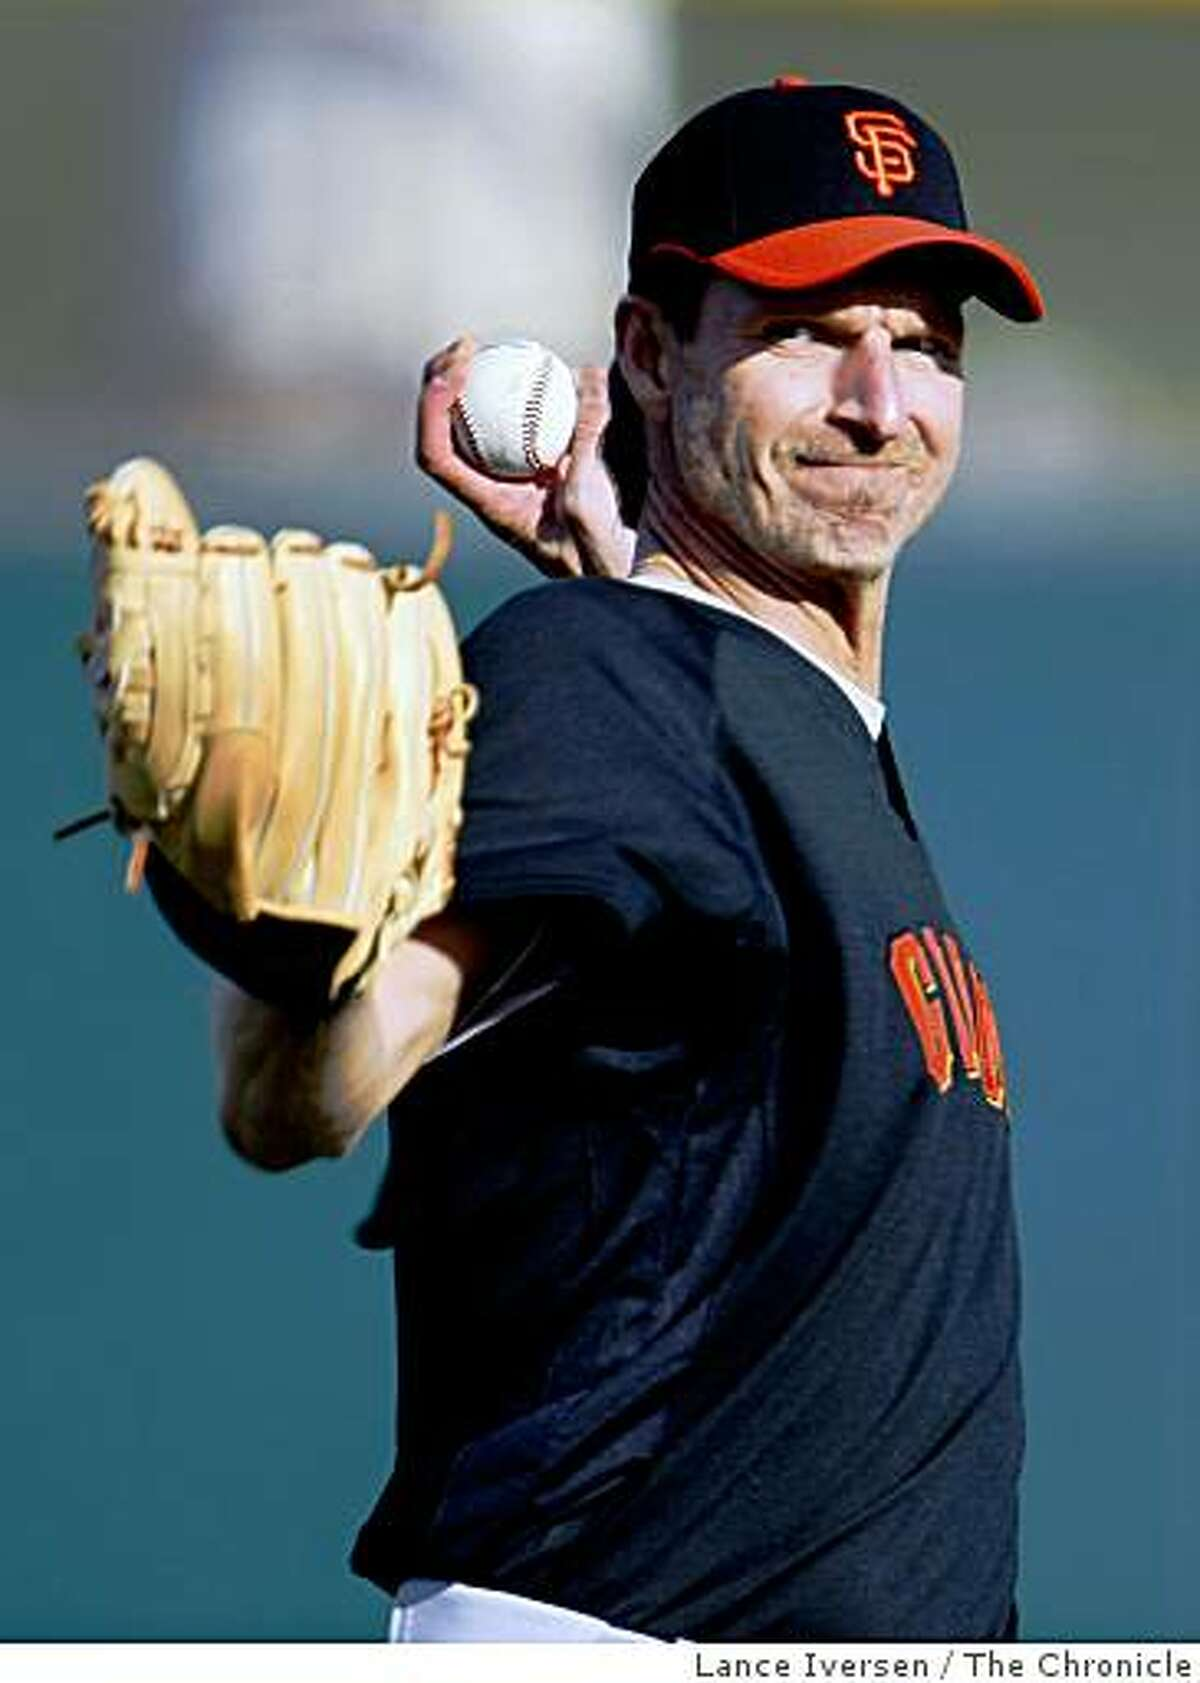 San Francisco Giants pitcher Randy Johnson warms up during the first full day of Spring Training workouts at Scottsdale Stadium Sunday February 15, 2009 in Scottsdale Arizona